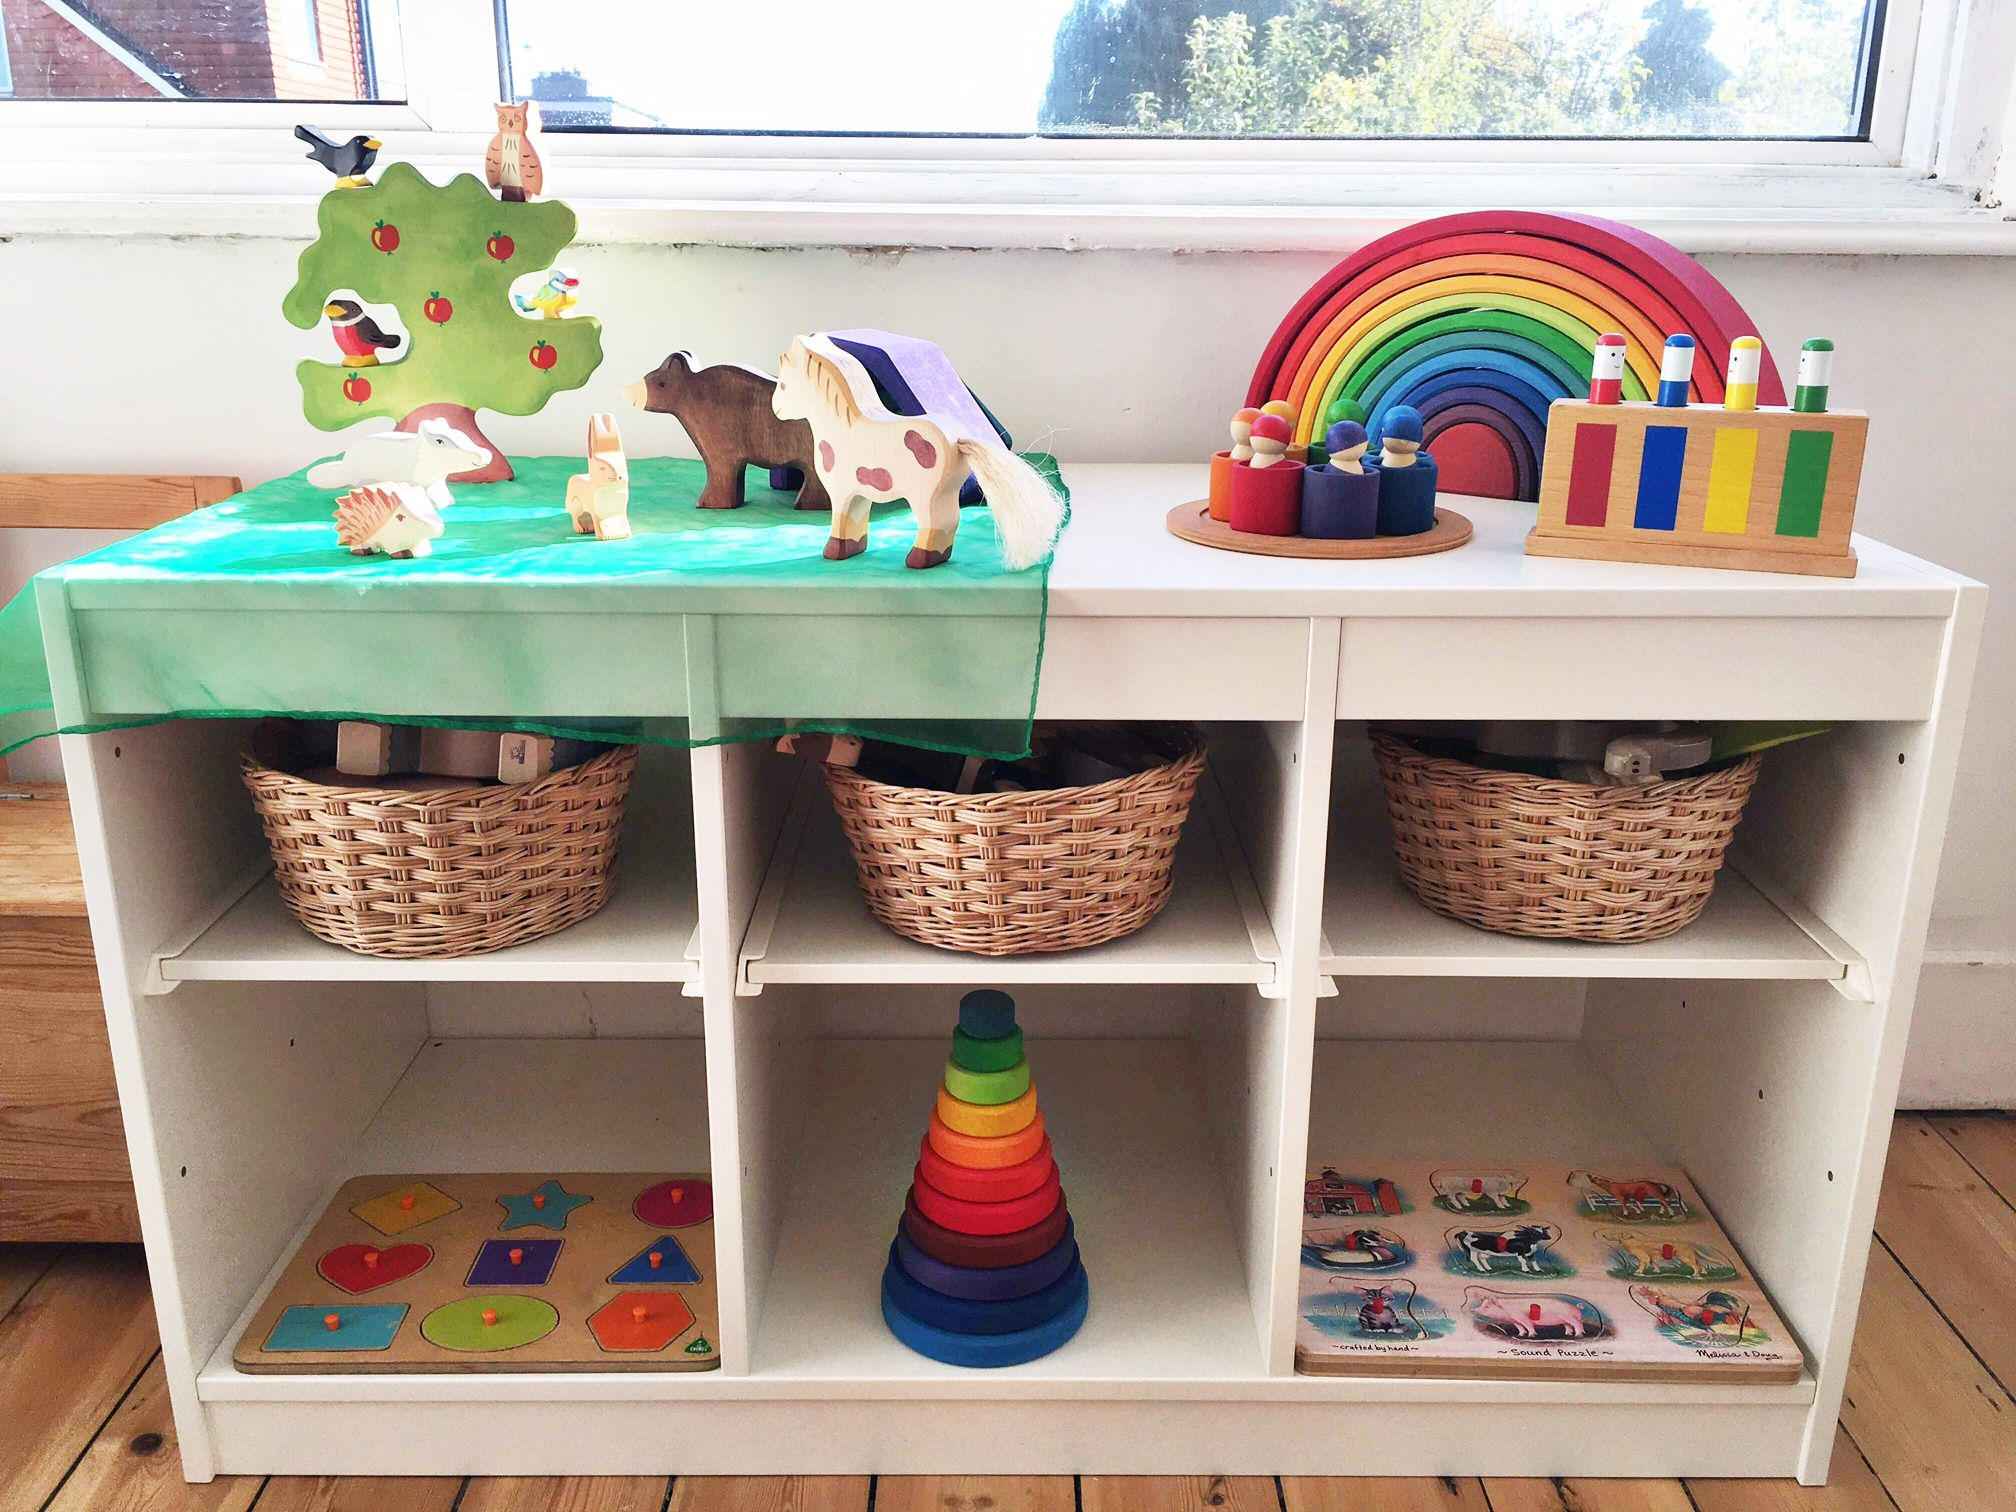 A peek inside a beautiful Montessori style home Creating a calm environment with toys